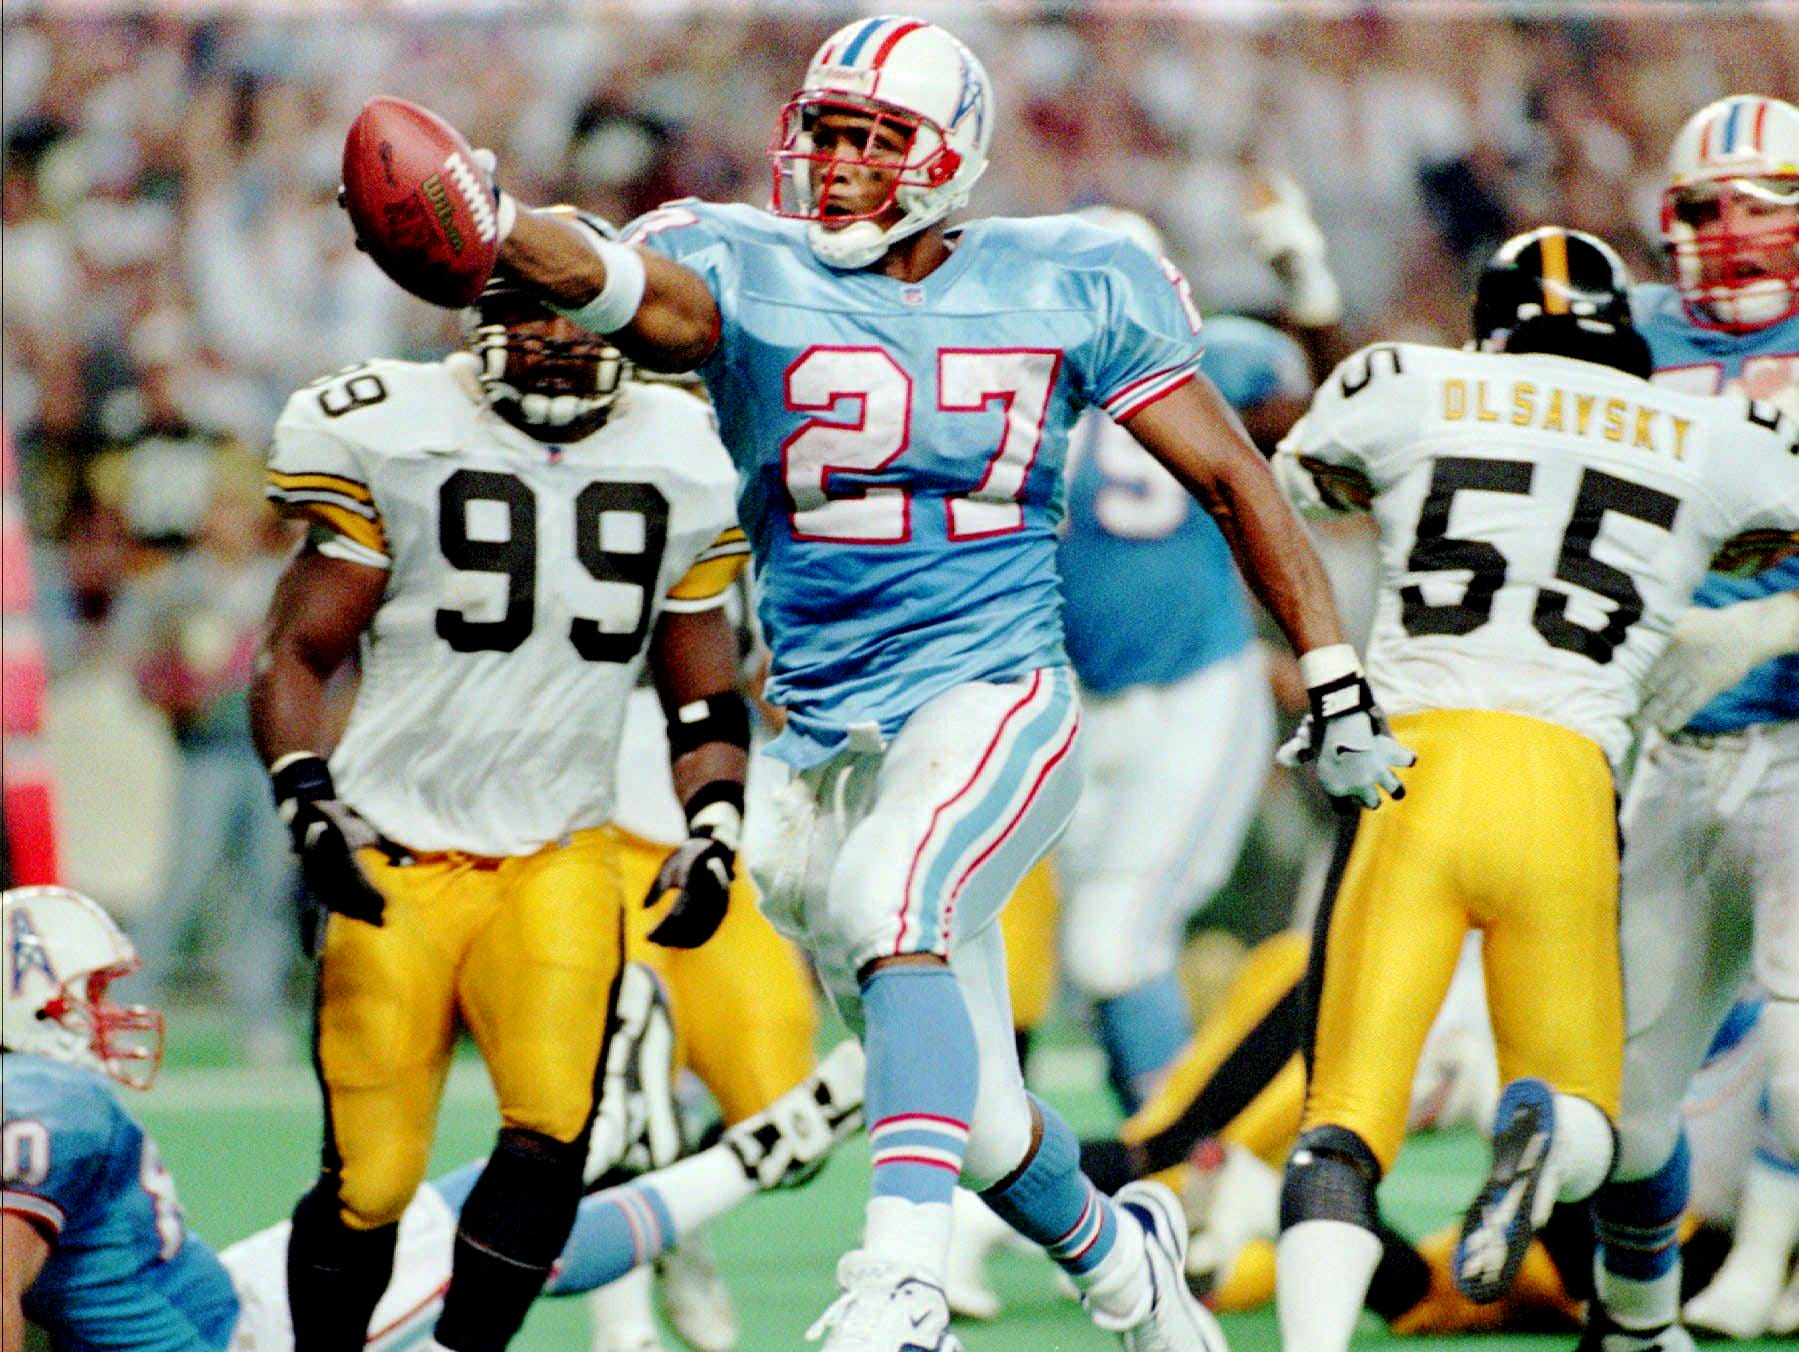 Houston Oilers running back Eddie George (27) skips into the end zone late in the fourth quarter for a touchdown against the Pittsburgh Steelers Oct. 20, 1996 in Houston.